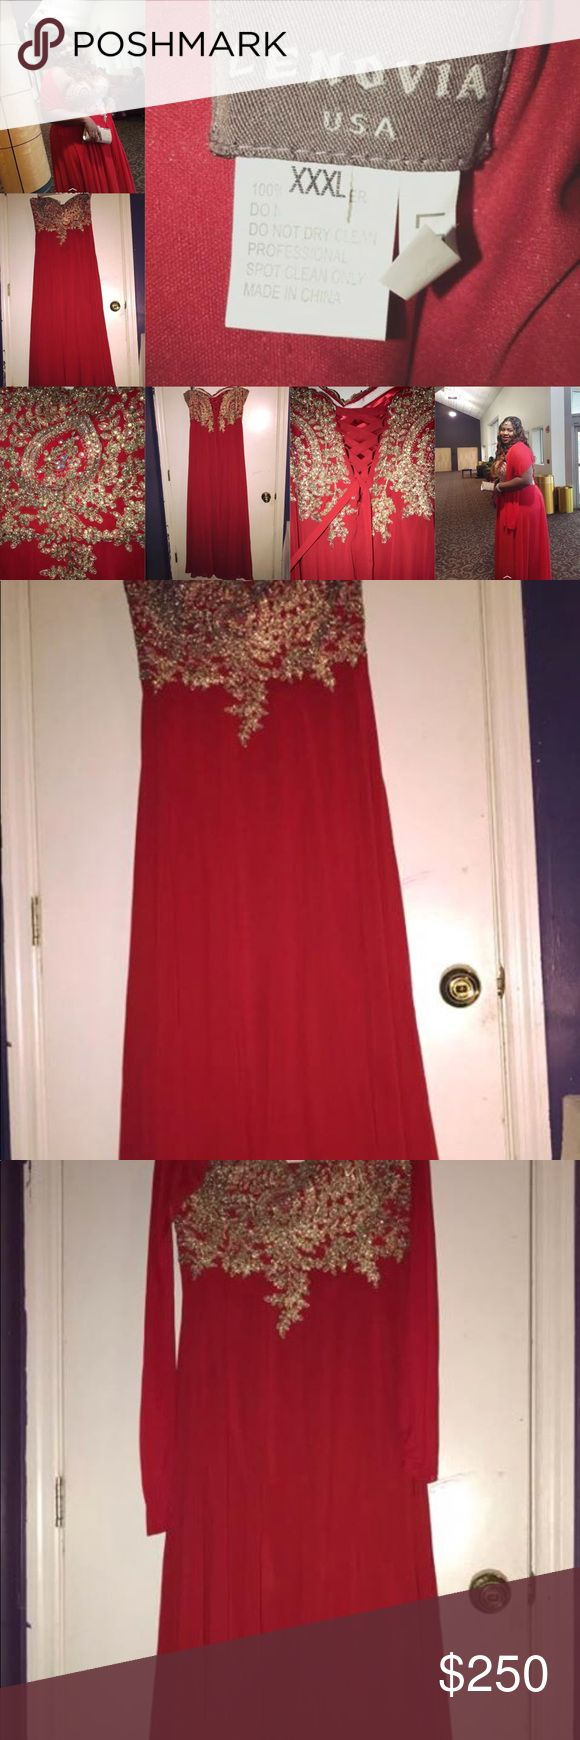 Plus Size Prom Dress This is a strapless red prom dress for a plus size girl. The size of the dress is a 3X aka XXXL (side note: this dress run smaller than the normal size, which means that if you wear a 1X aka XL or a 2X aka XXL, then you're qualified for the dress). I have a couple of pictures of the dress above, some pictures will include me wearing it, when I went to my senior prom. Now I just feel like I have no use for it no more and I don't want it to go to waste. So yes, have at…